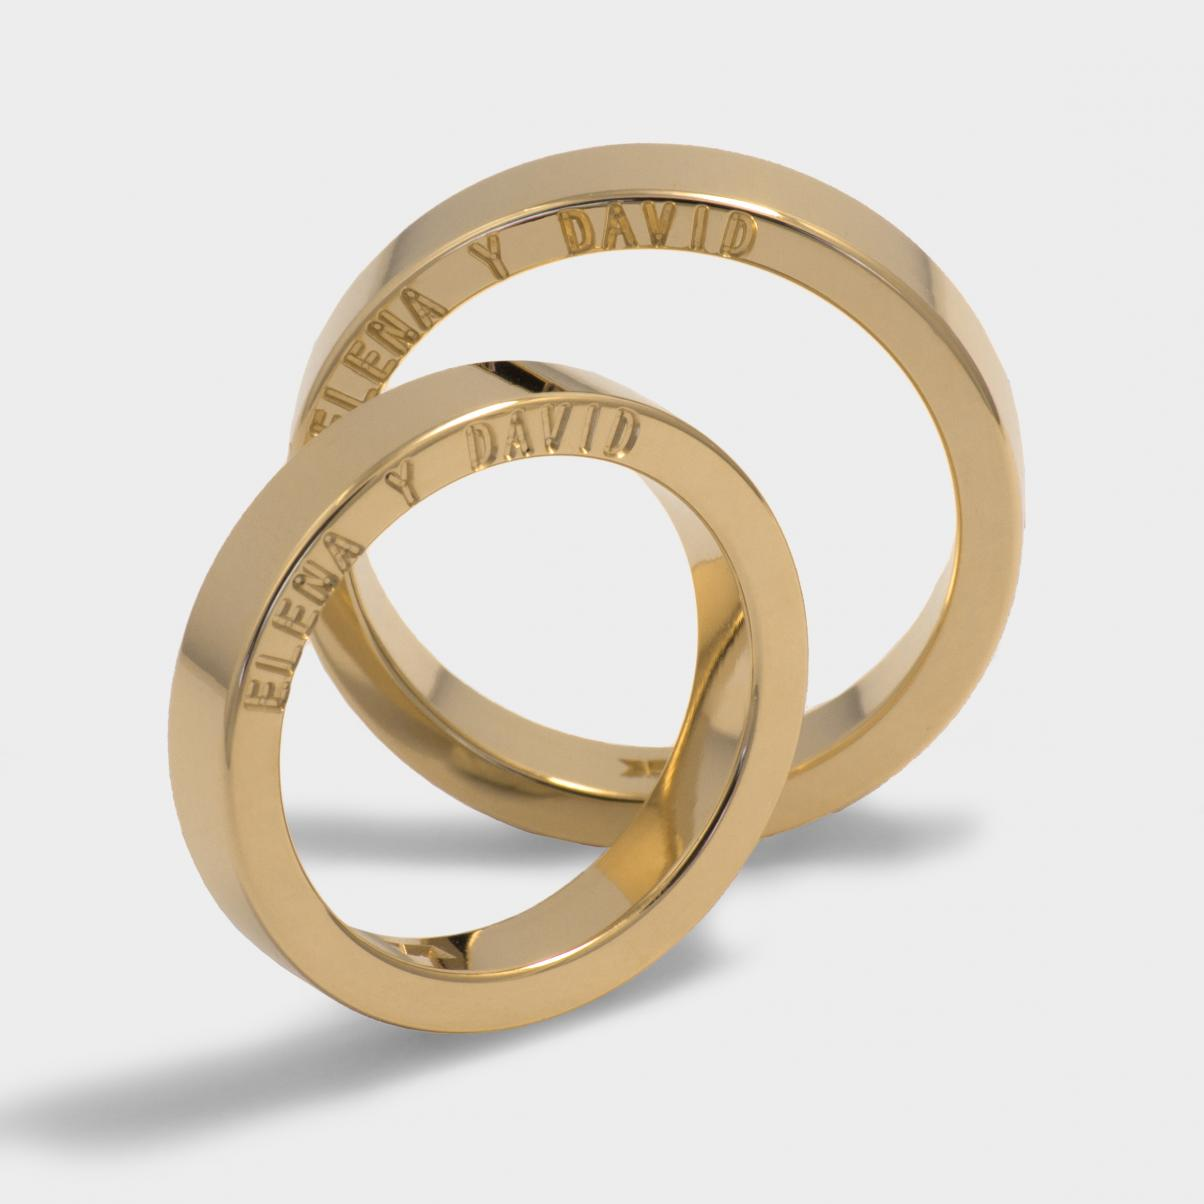 Ring classic model New York Yellow gold plated Width 4mm Rings